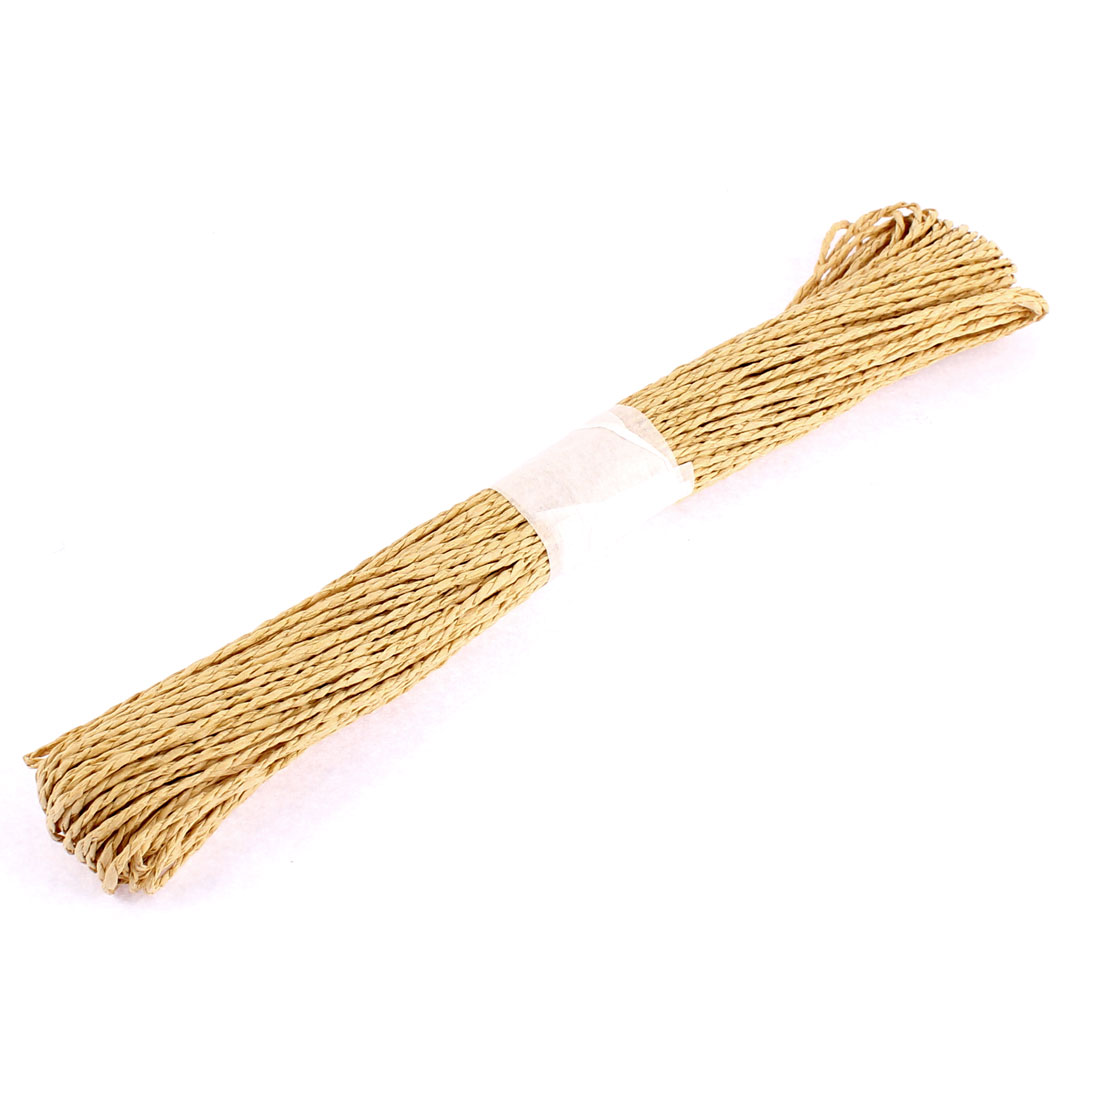 Paper Raffia Cord Ribbon Gift Wrap Craft Pack Rope Strings Khaki